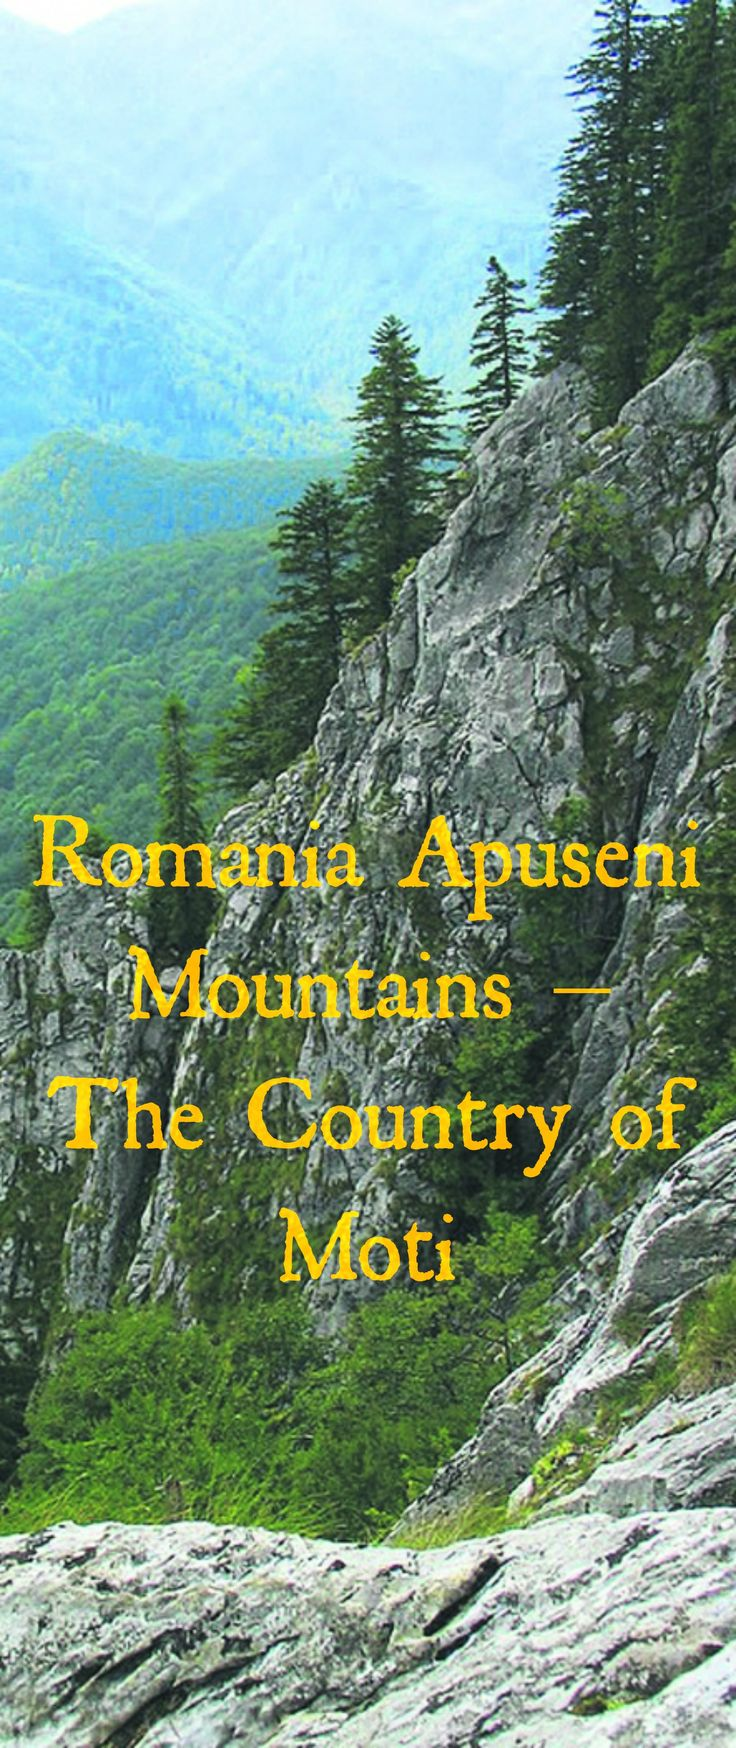 Romania Apuseni Mountains – The Country of Moti   The cave fauna is the main attraction of the Apuseni Mountains, with some of the wild caves sheltering rare bat species, such as the dwarf bat (Pipistrellus pipistrellus).